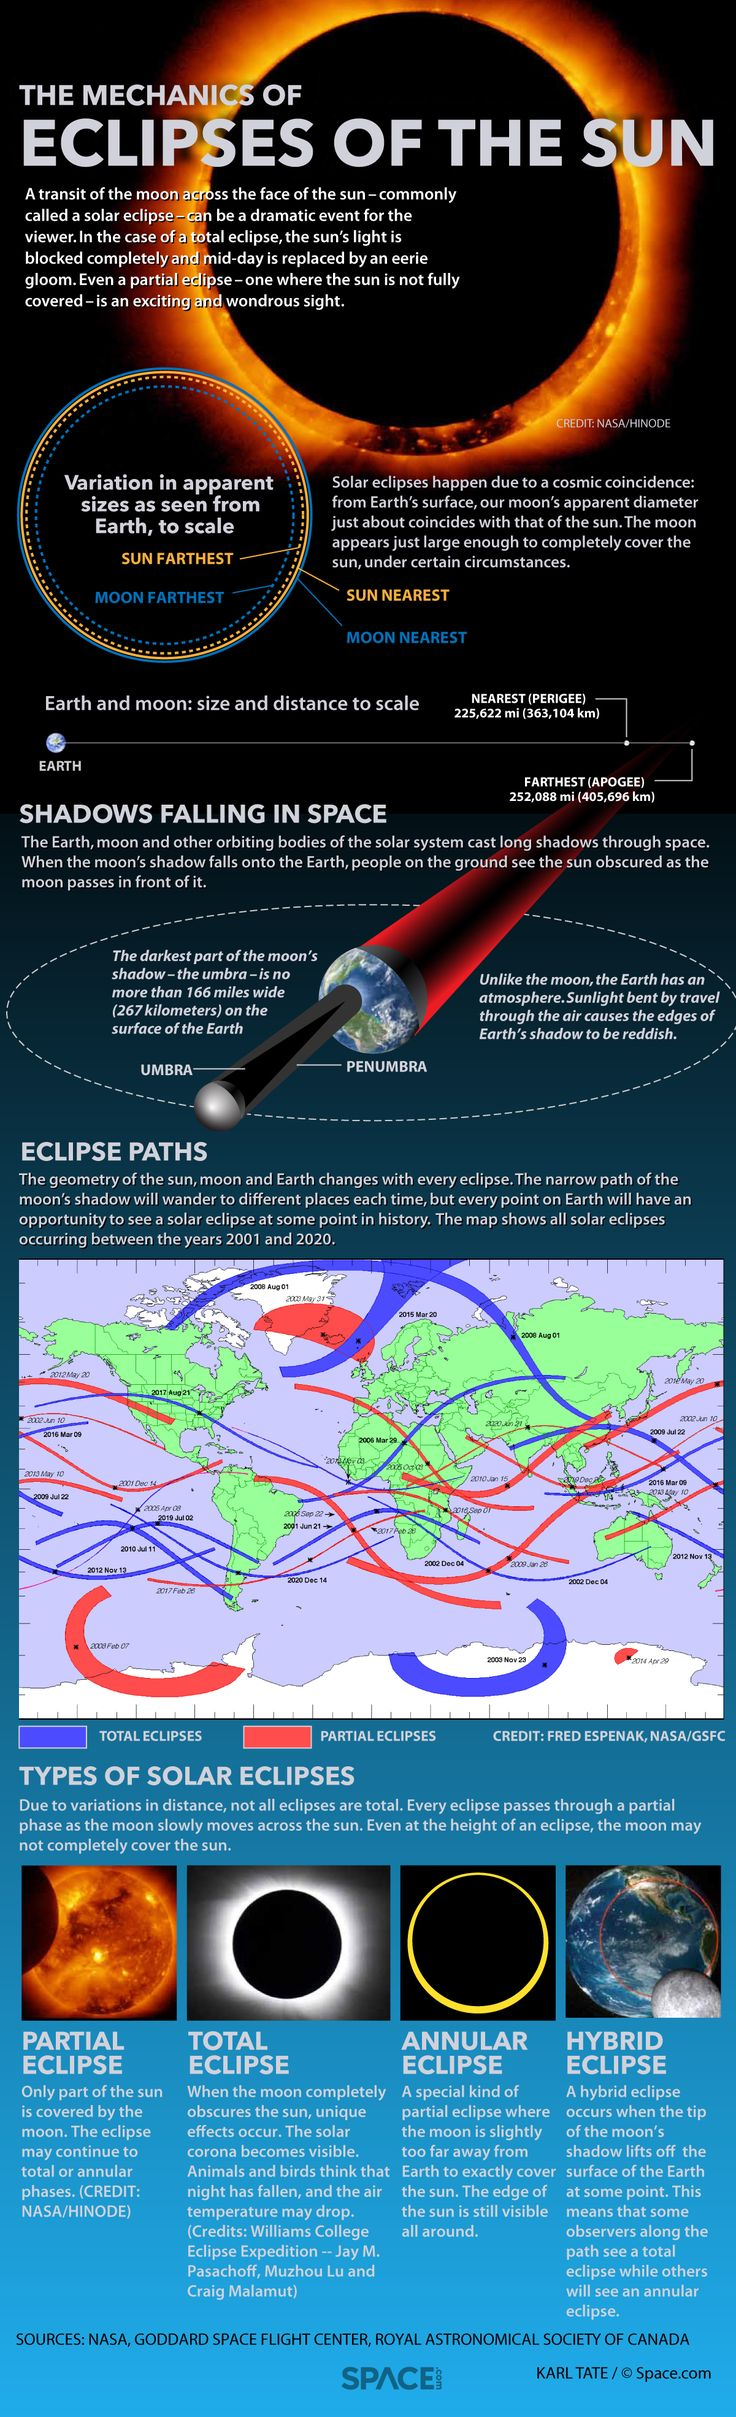 lunar eclipse space facts - photo #16